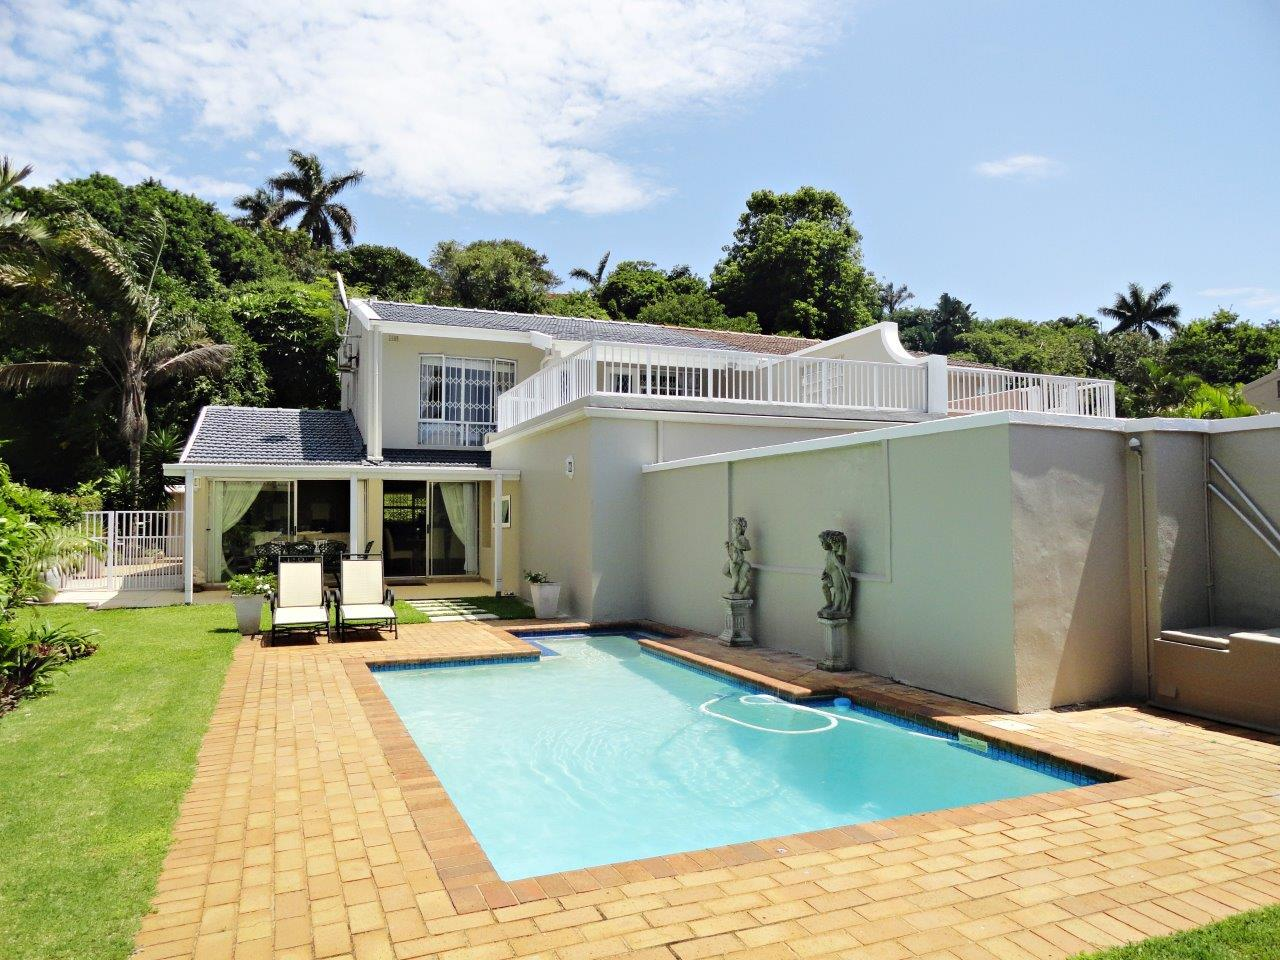 3 BedroomHouse For Sale In La Lucia